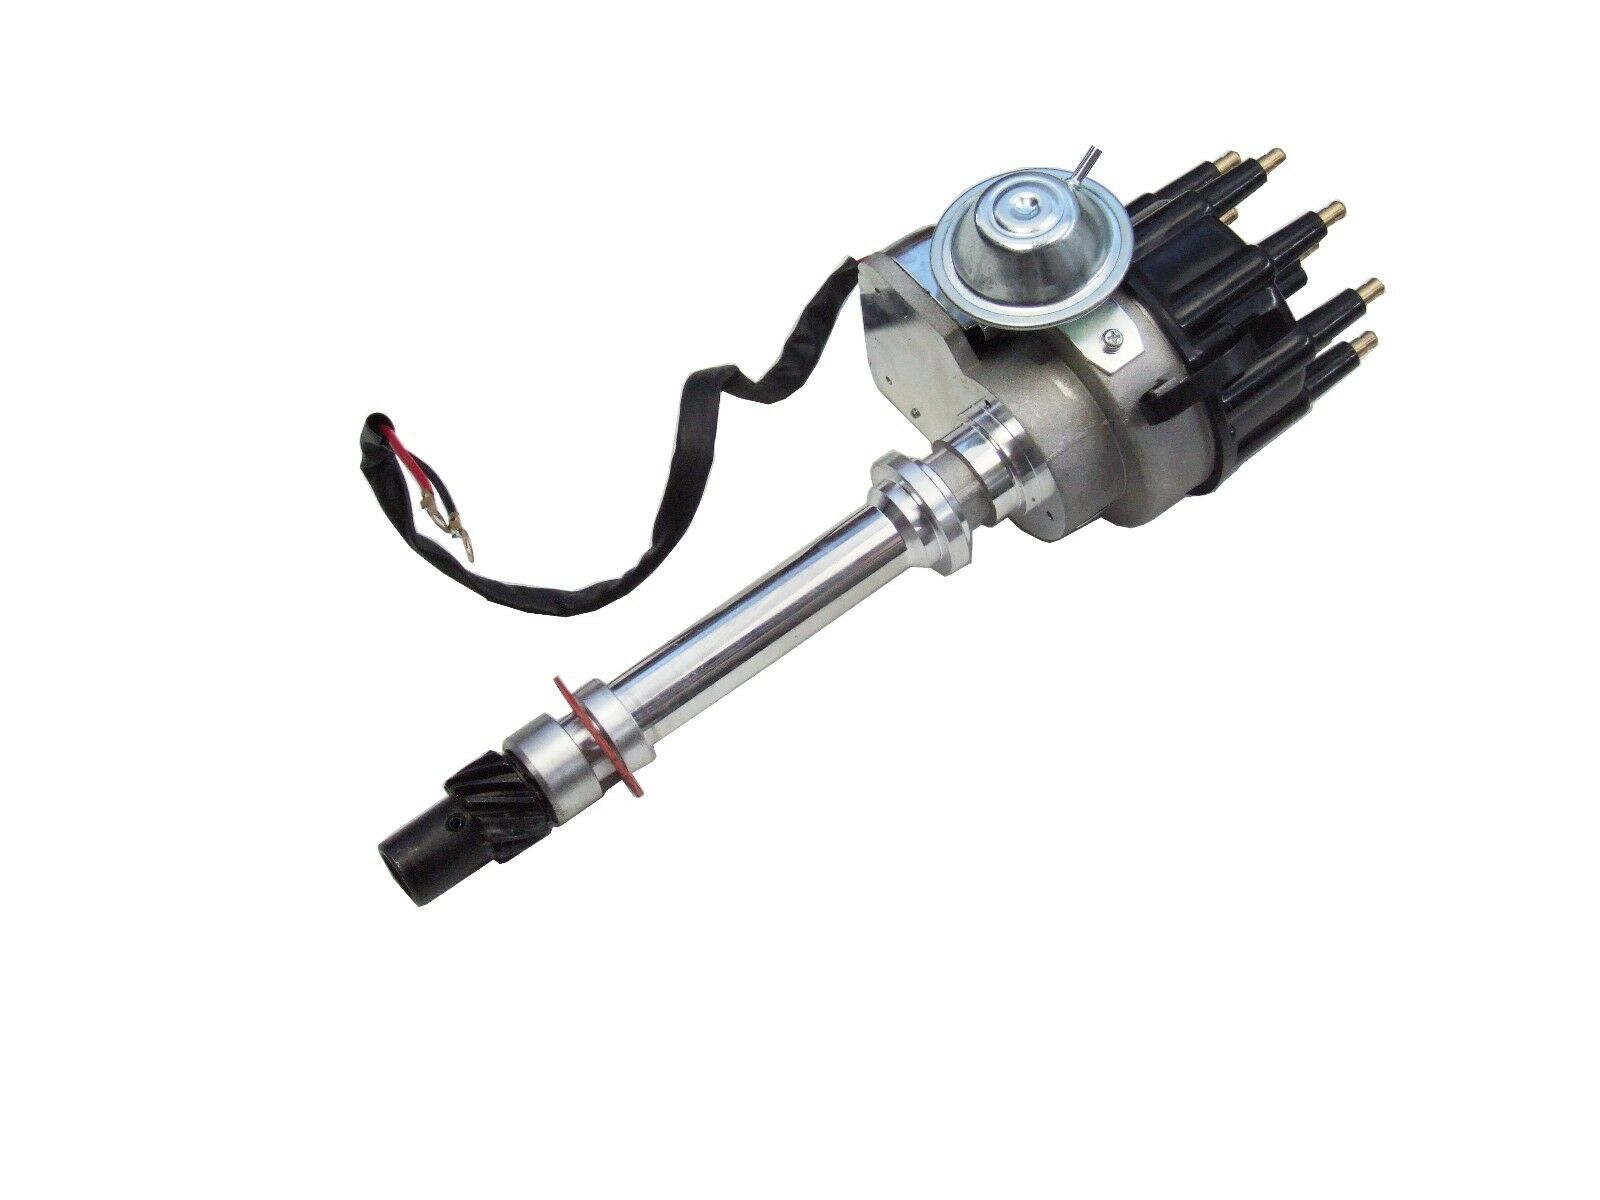 Sbc Bbc Chevy Hei Distributor V8 Ready To Go 350 454